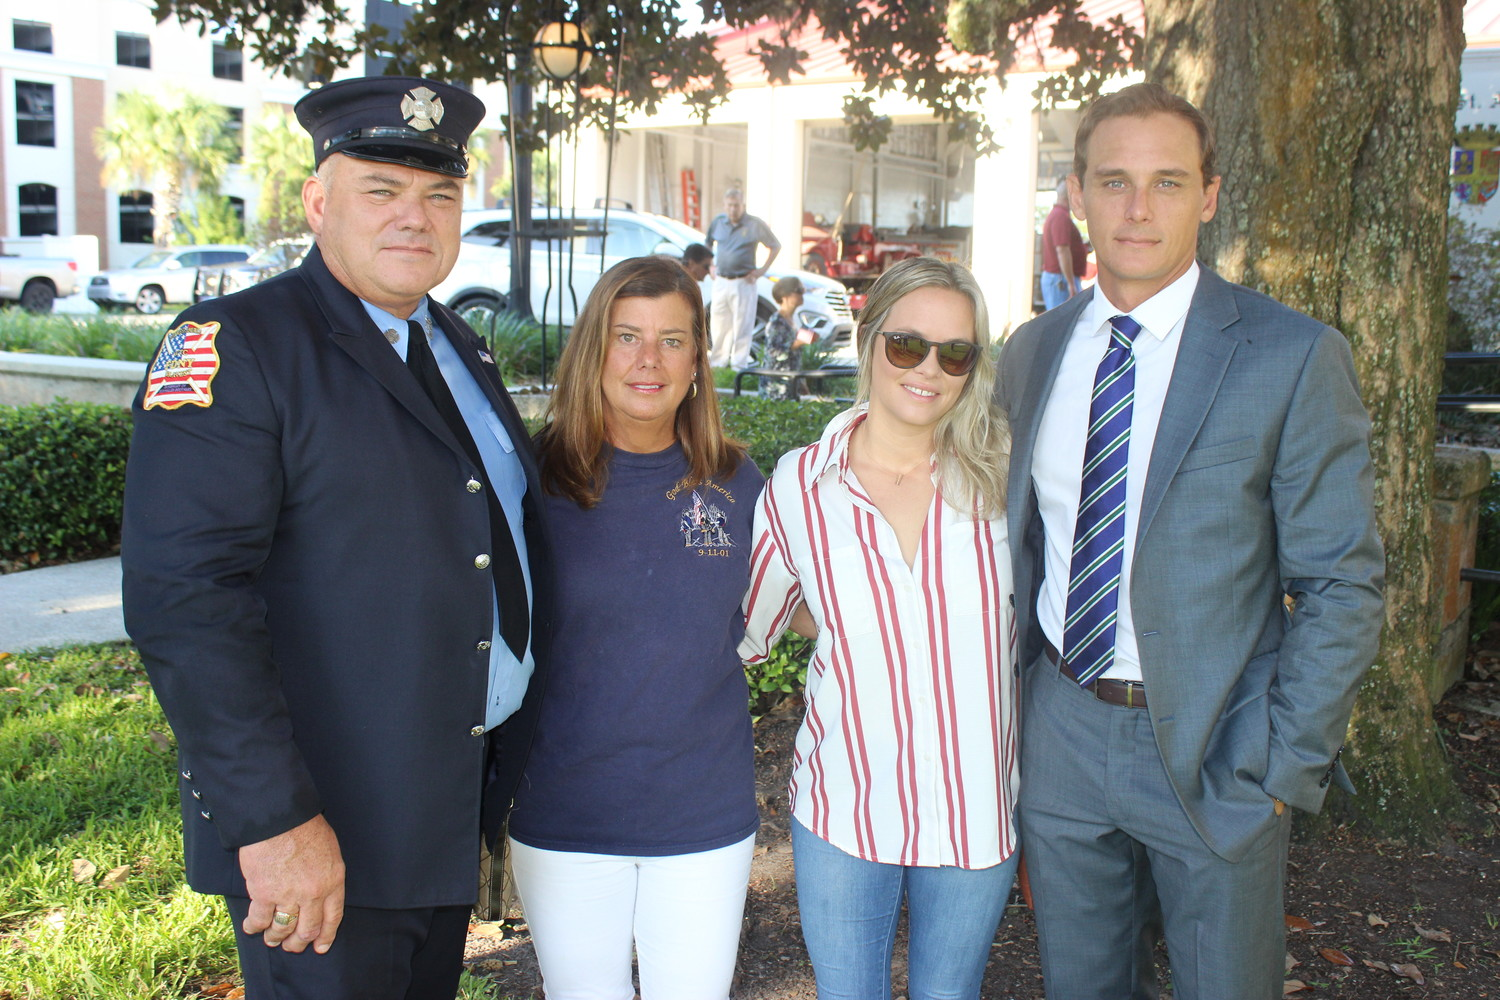 John Westfield (left), a retired FDNY firefighter who responded to the 9/11 attacks, gathers with his family after speaking at a special ceremony held Tuesday in St. Augustine to remember those lost 17 years ago. Westfield and his family now live in St. Augustine.